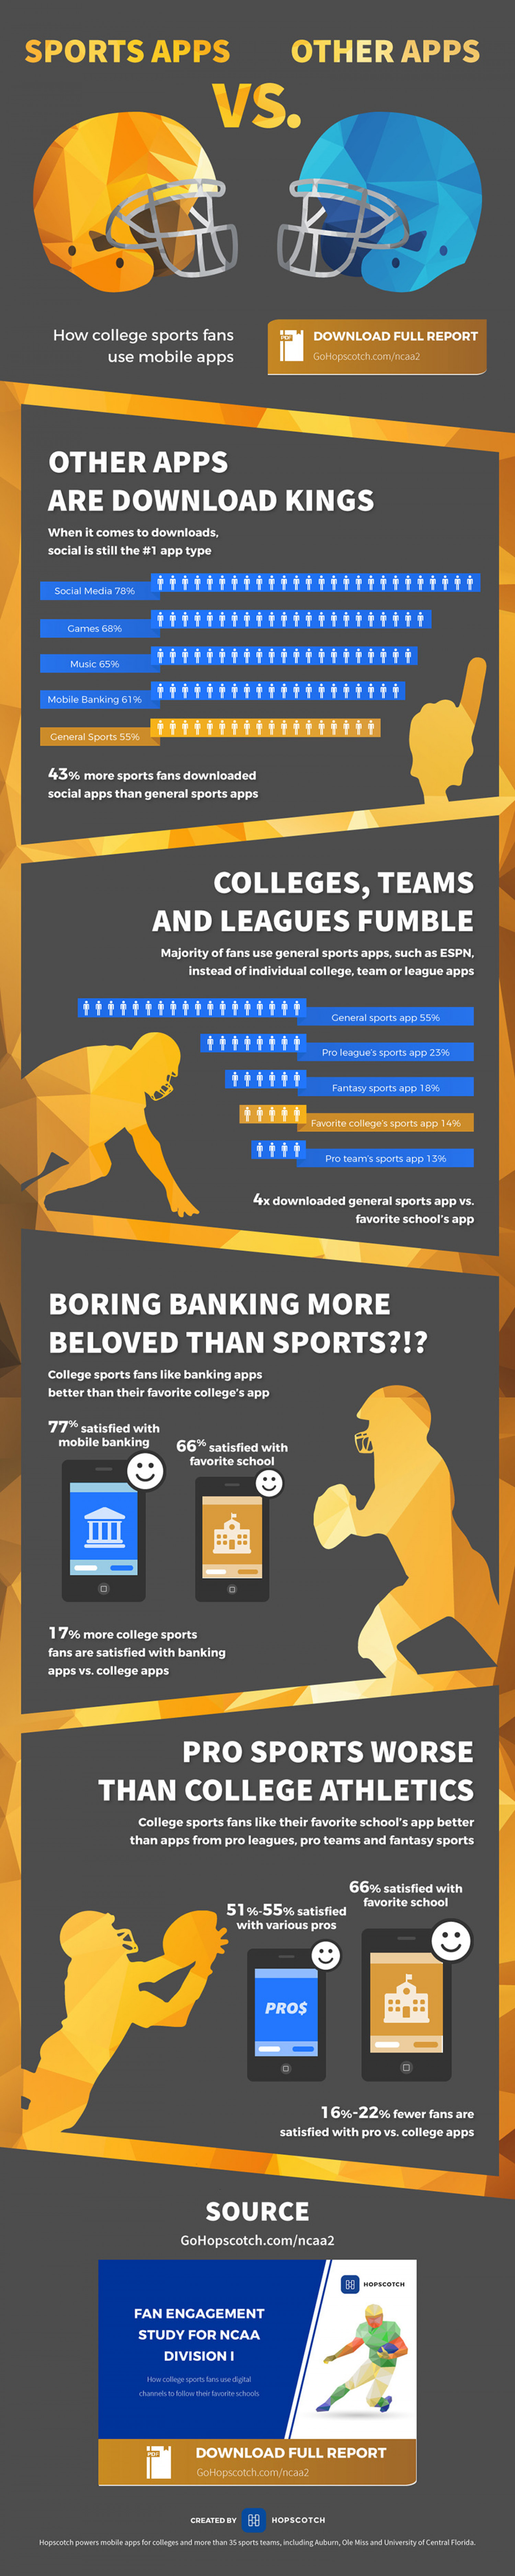 How College Sports Fans Use Mobile Apps: Sports Apps vs Other Apps Infographic